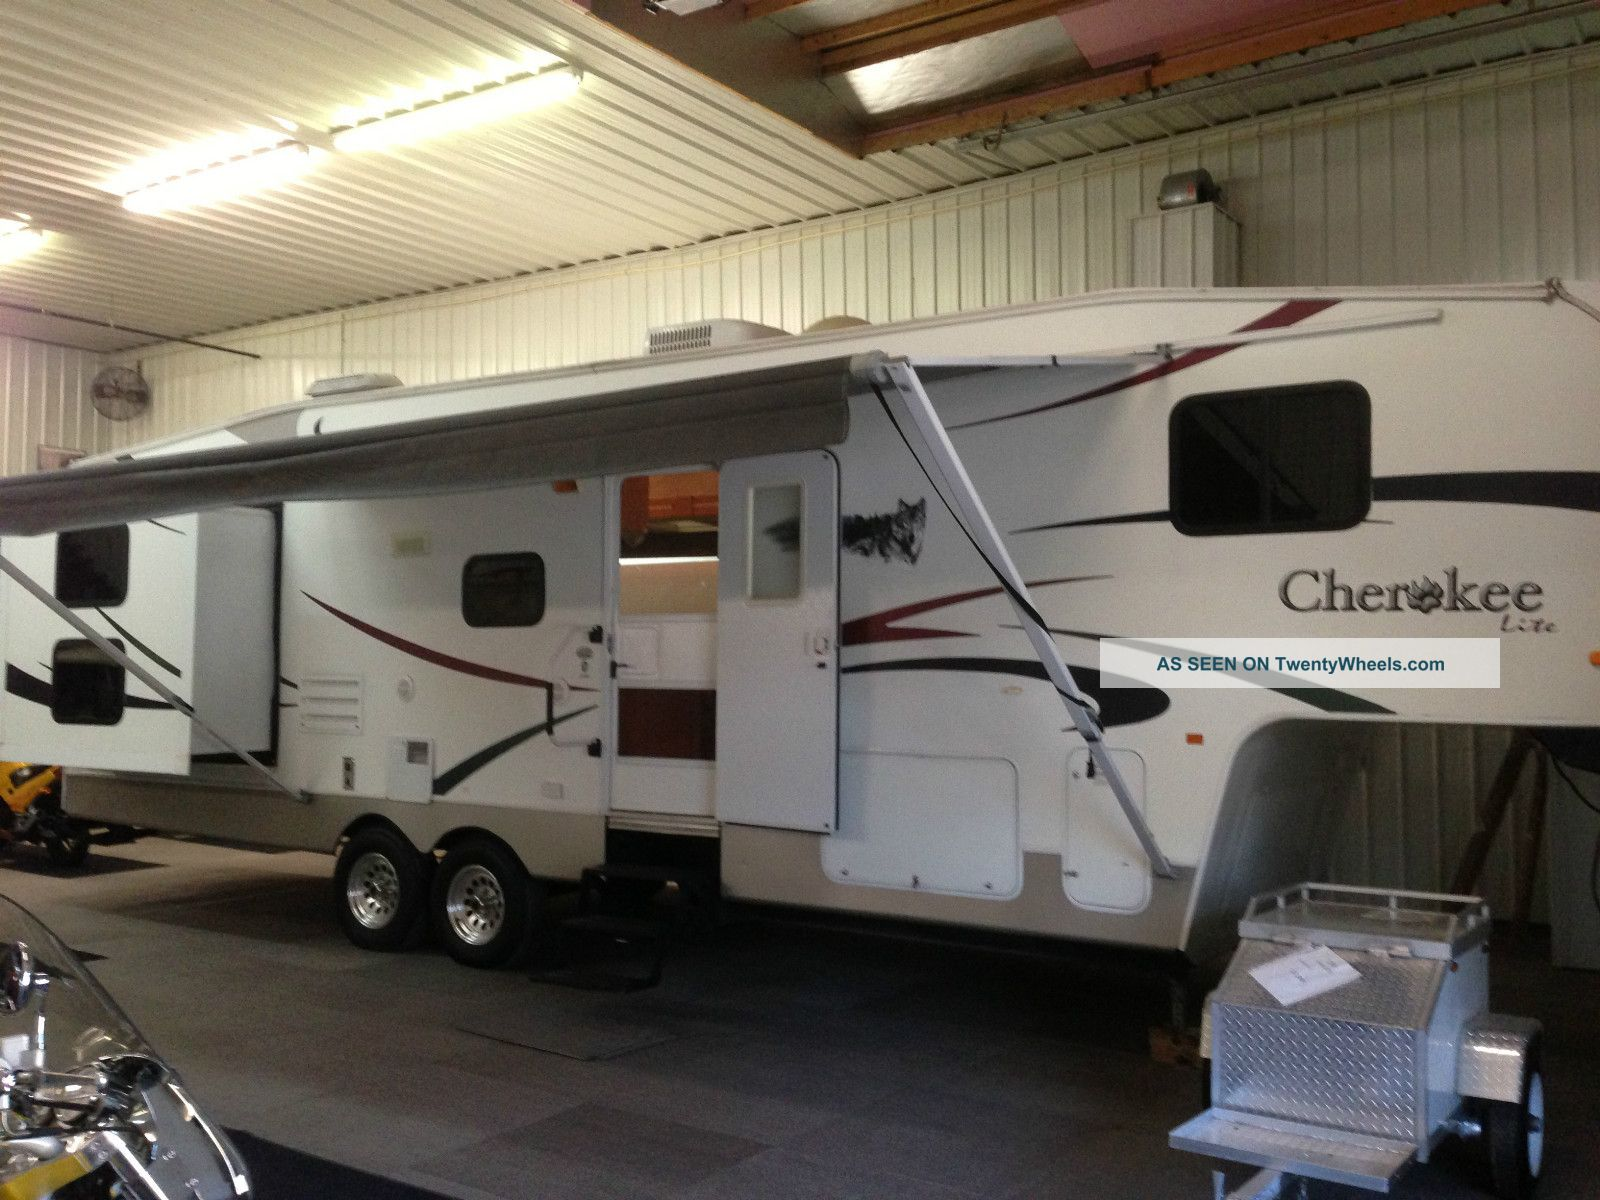 2008 Forest River Cherokee M285b+ Fifth Wheel RVs photo